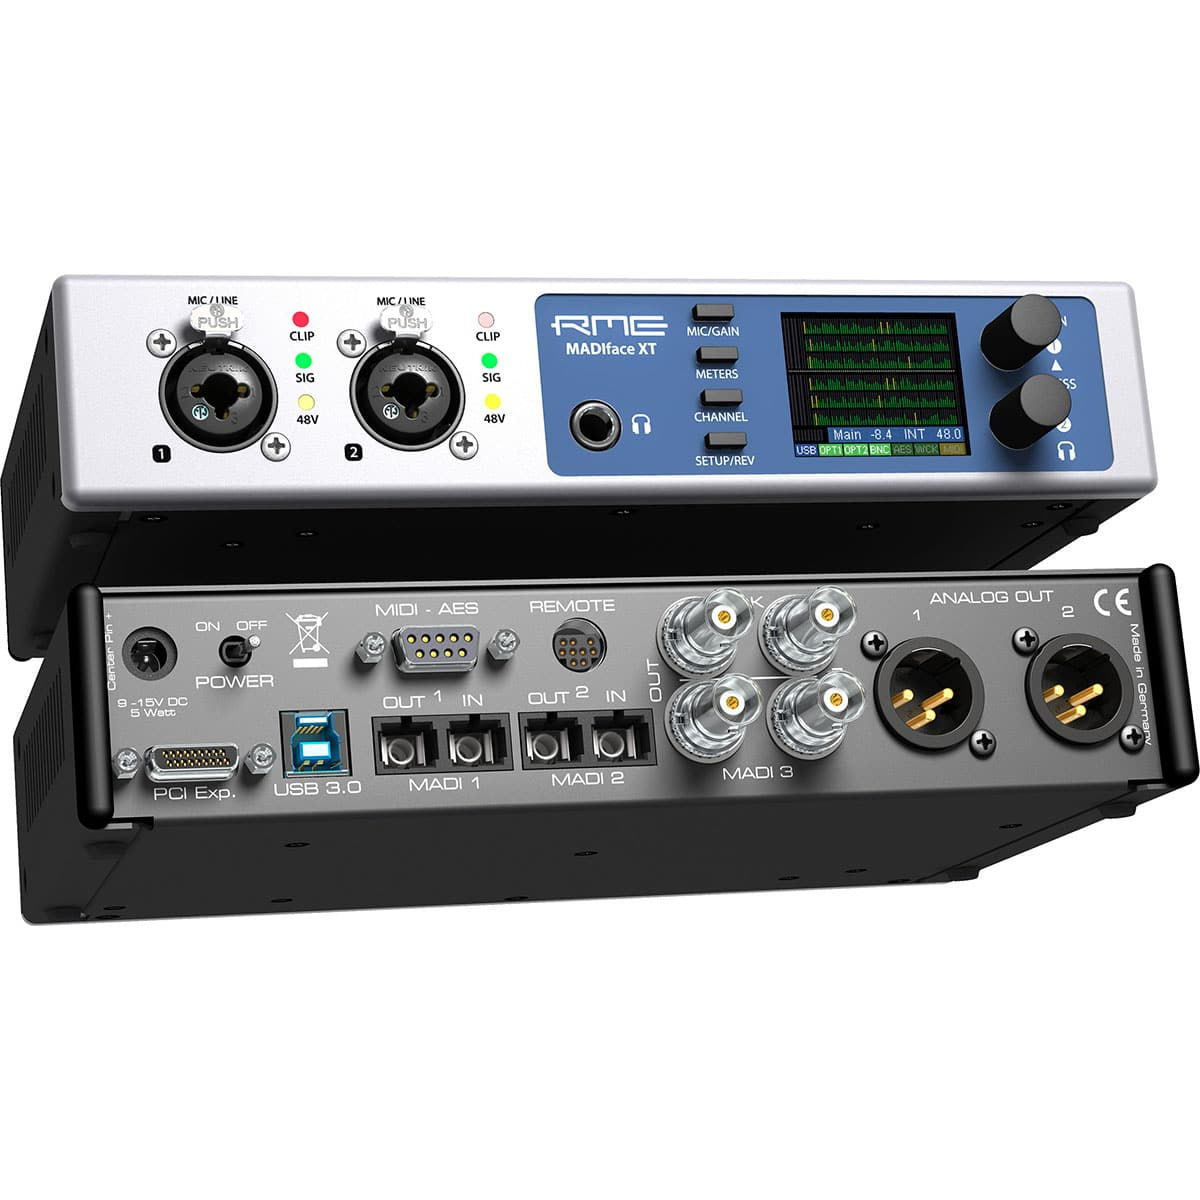 RME Madiface XT 04 Pro Audio, Audio Digitale, Schede Audio per PC e MAC